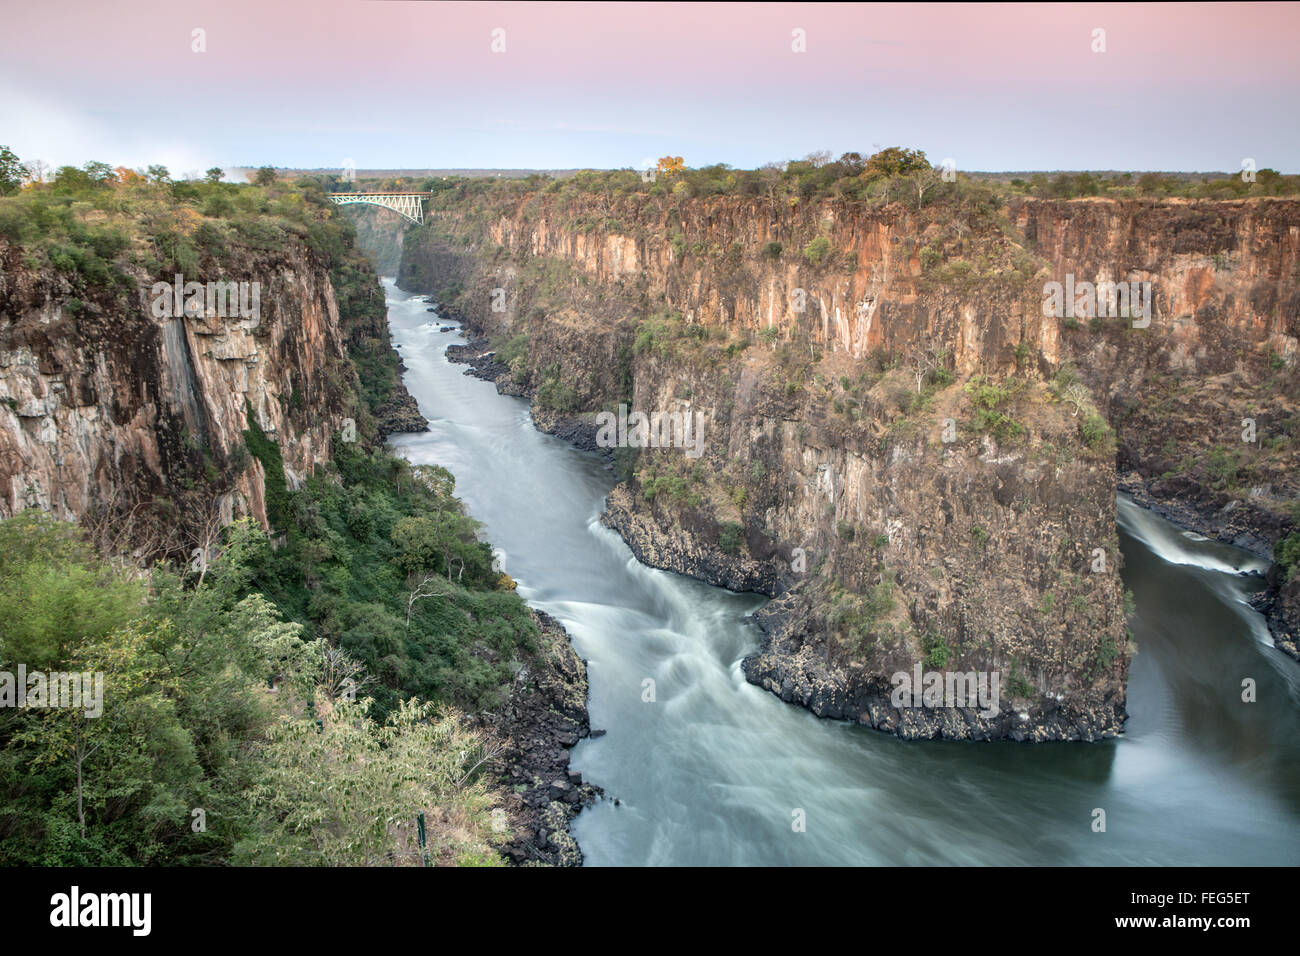 Batoka Gorge and Victoria falls bridge - Stock Image